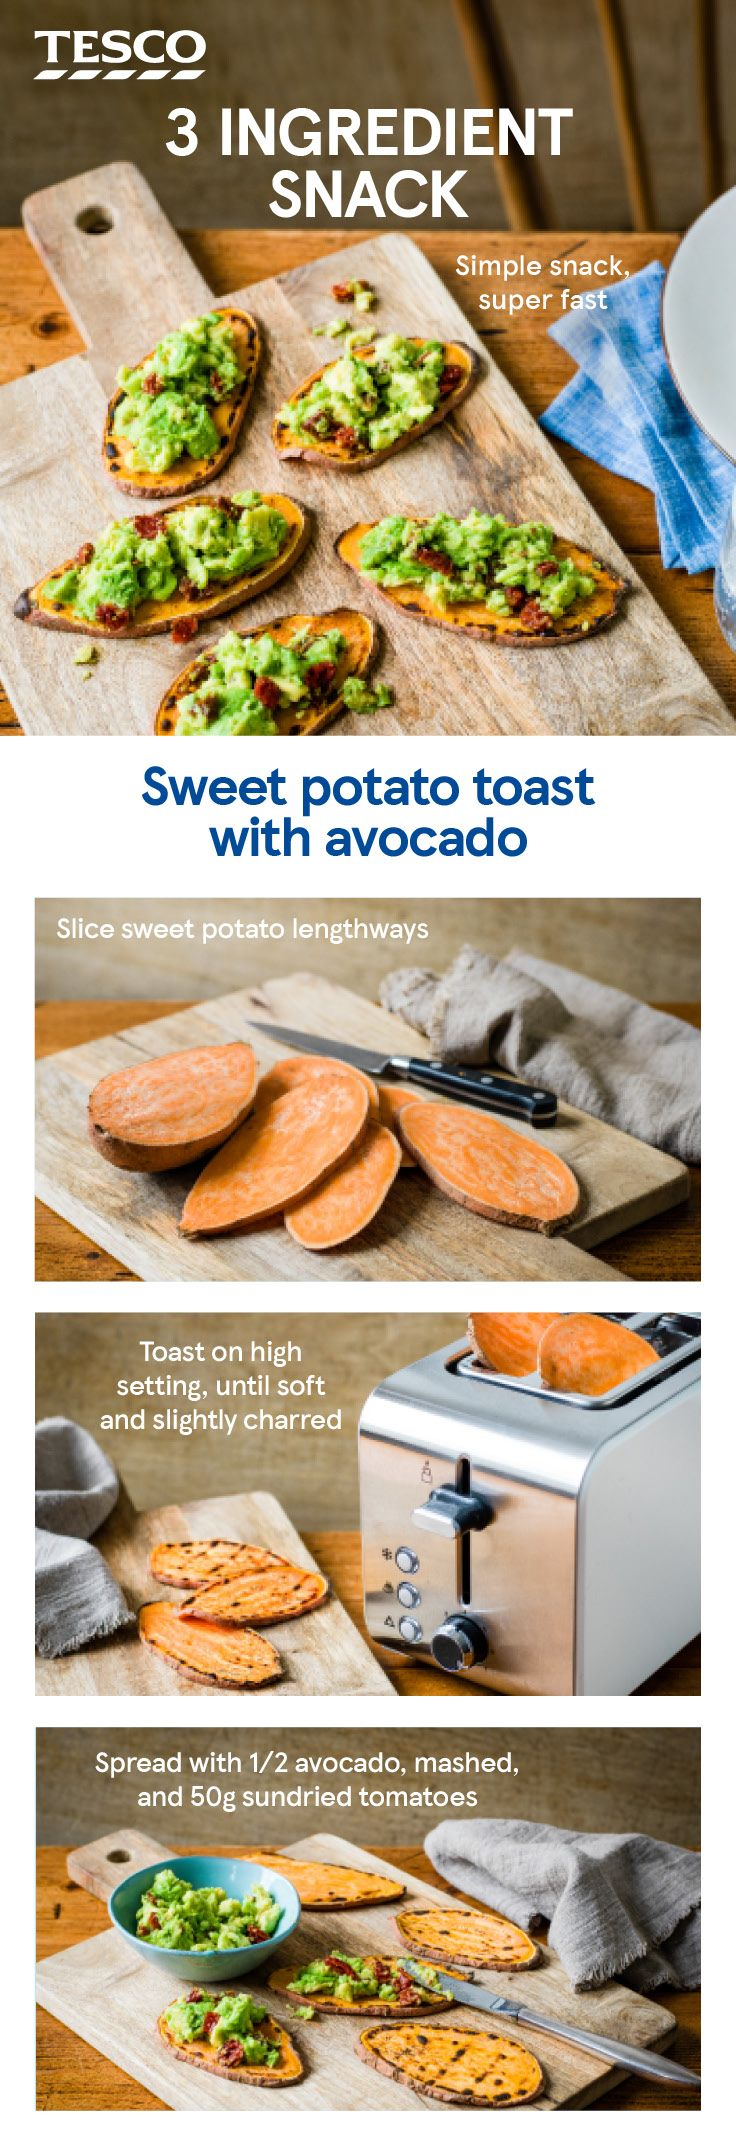 Ever wondered how to make sweet potato toast? With just 3 ingredients and 3 steps, this quick and easy sweet potato recipe makes a healthy brunch with an avocado and sundried tomato topping. | Tesco